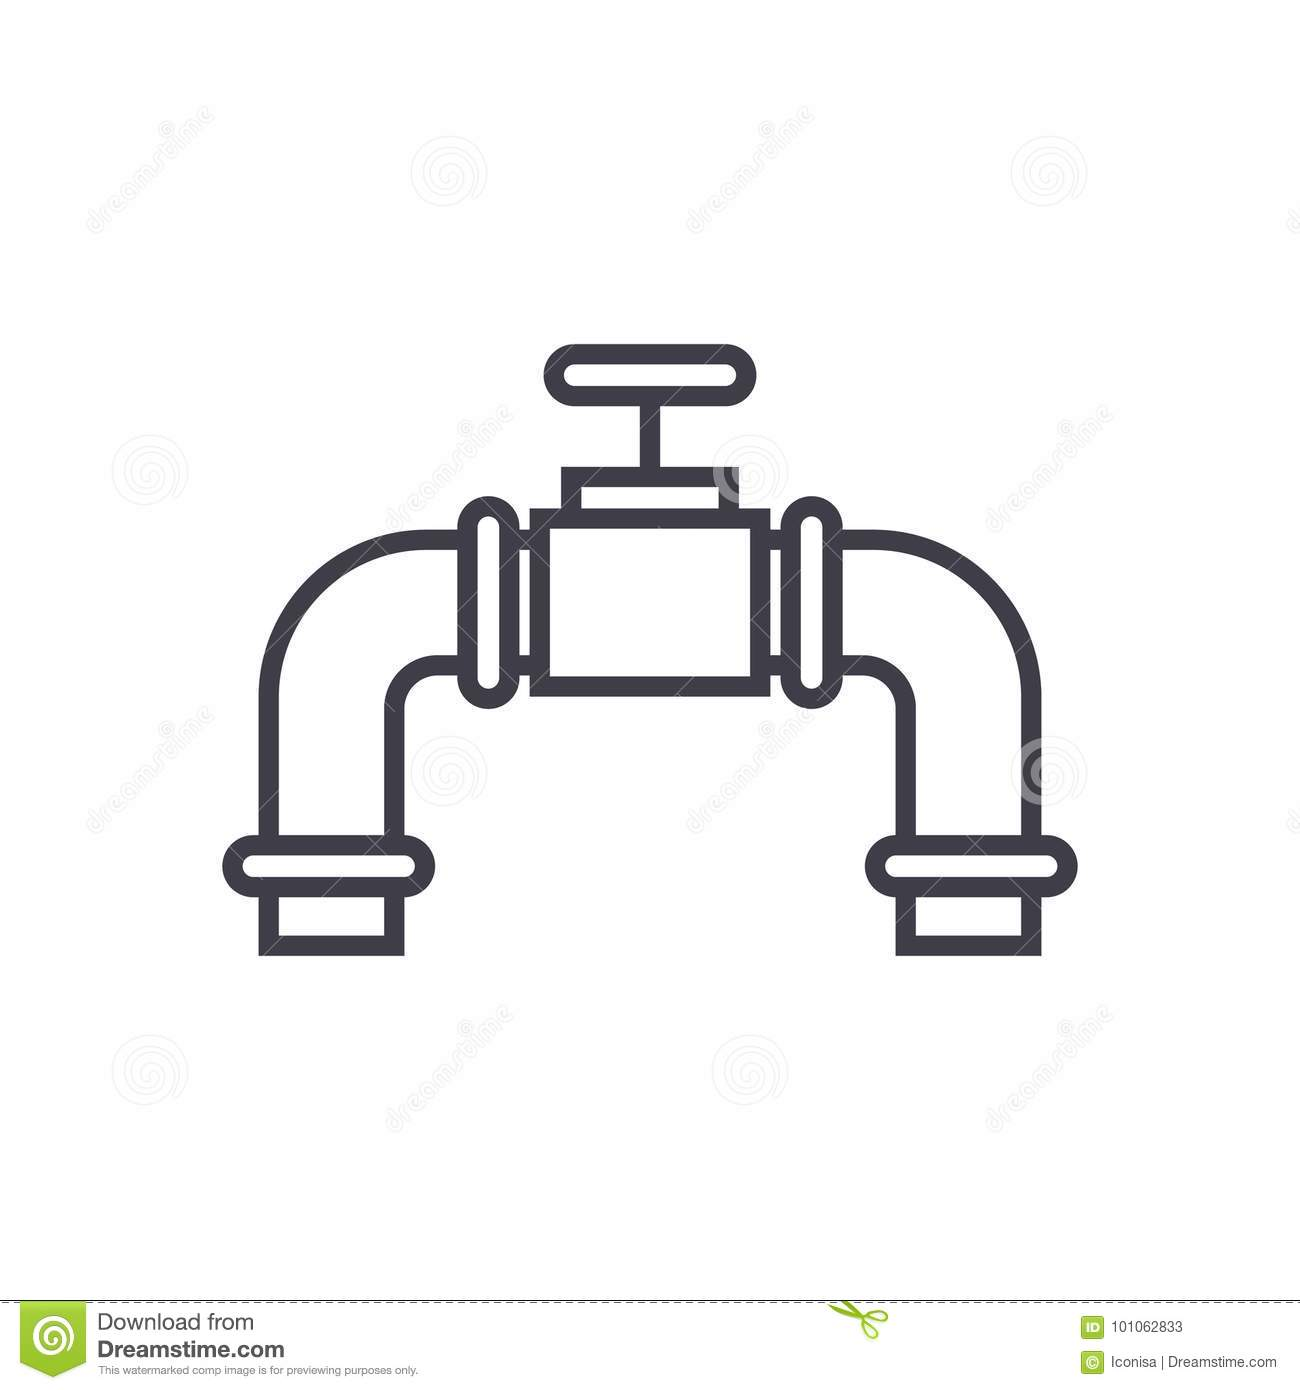 Pipes With Gas Valve Vector Line Icon Sign Illustration